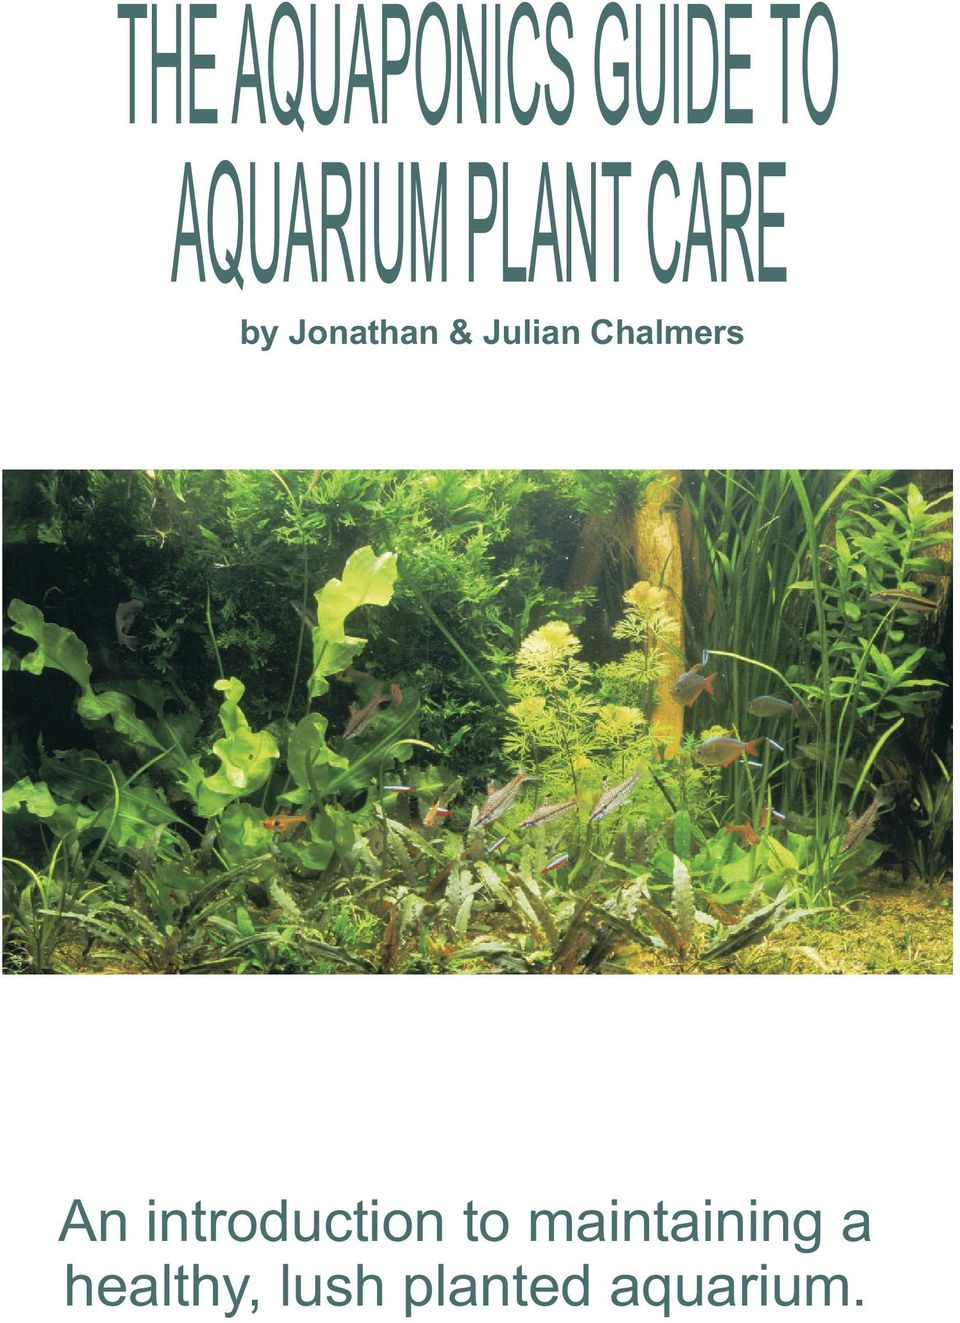 THE AQUAPONICS GUIDE TO AQUARIUM PLANT CARE - PDF